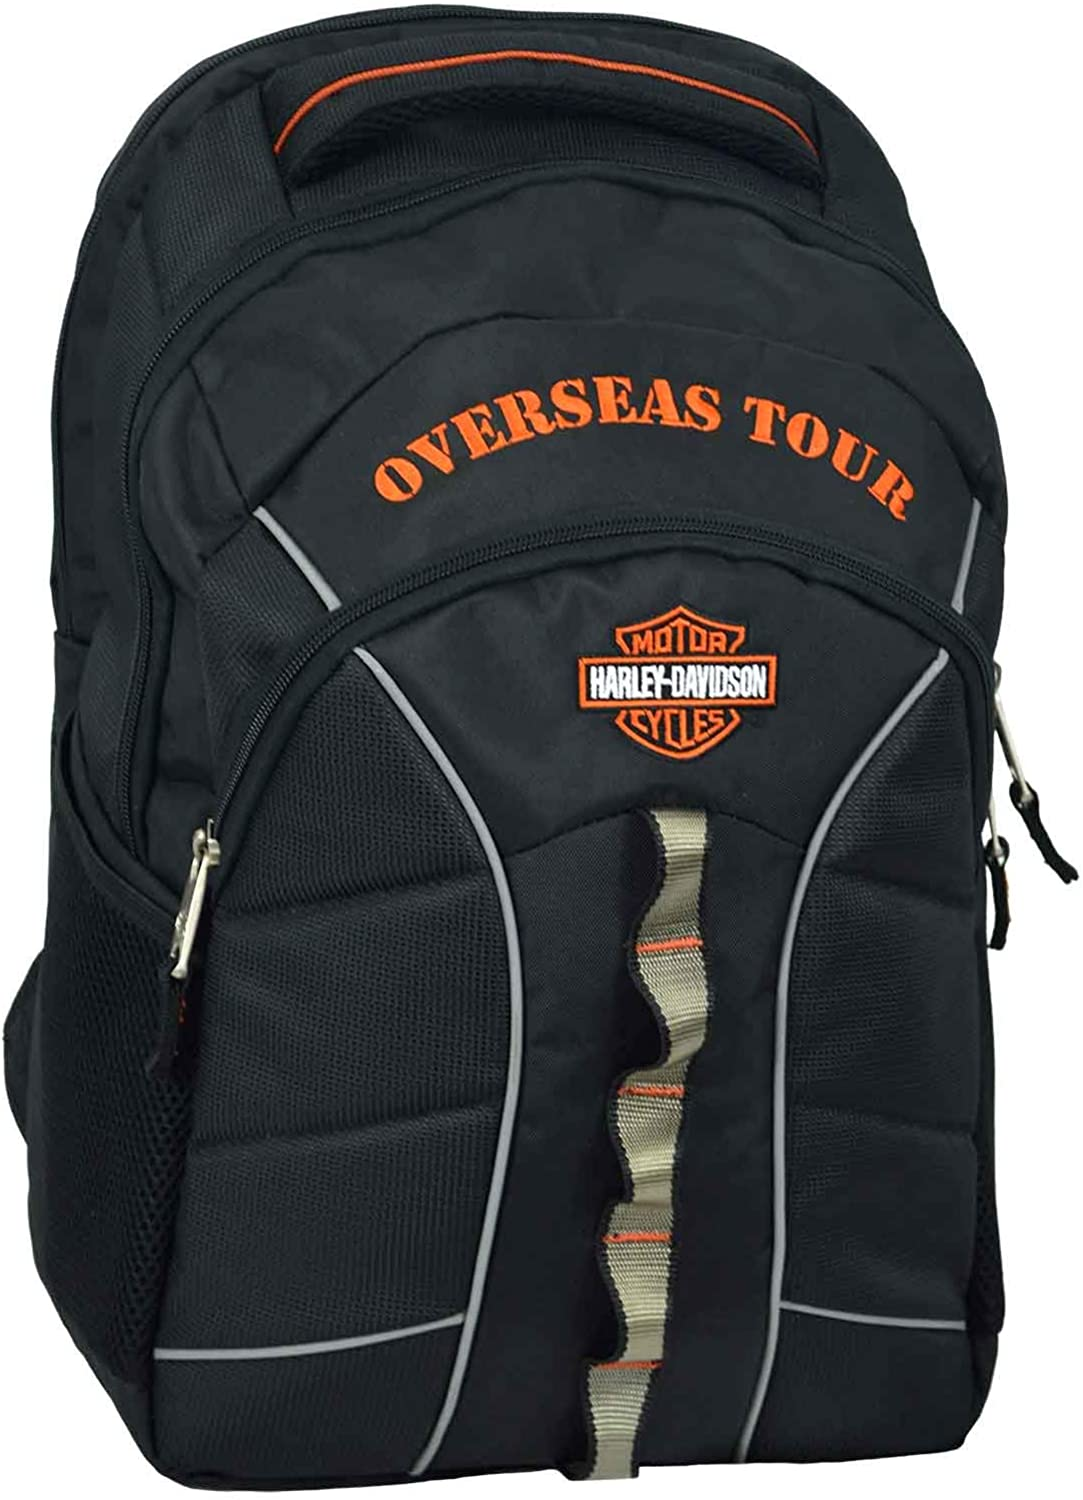 "Harley-Davidson Military -""Laptop Fit"" Backpack - Overseas Tour"